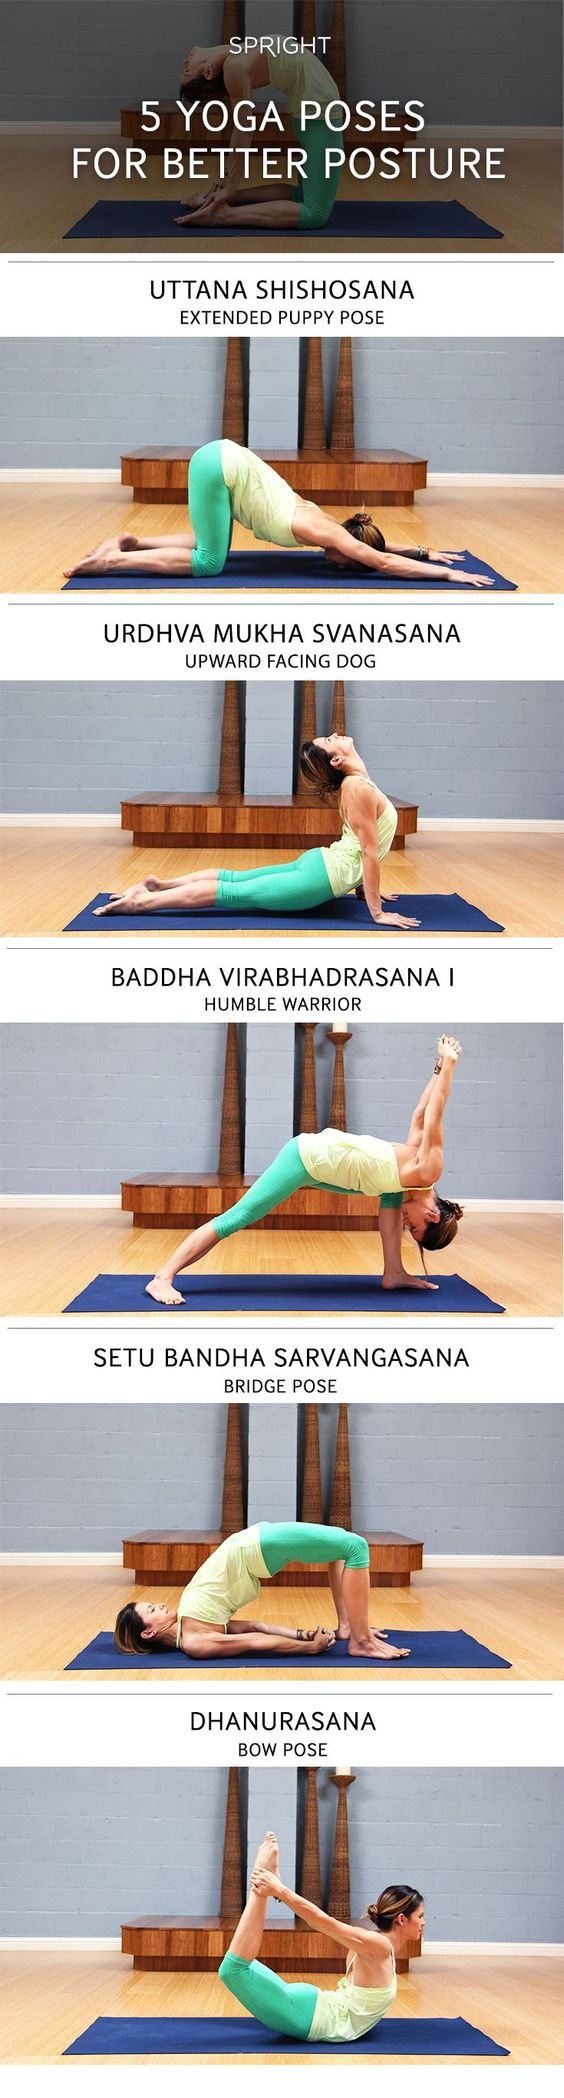 These yoga poses will help improve your posture!